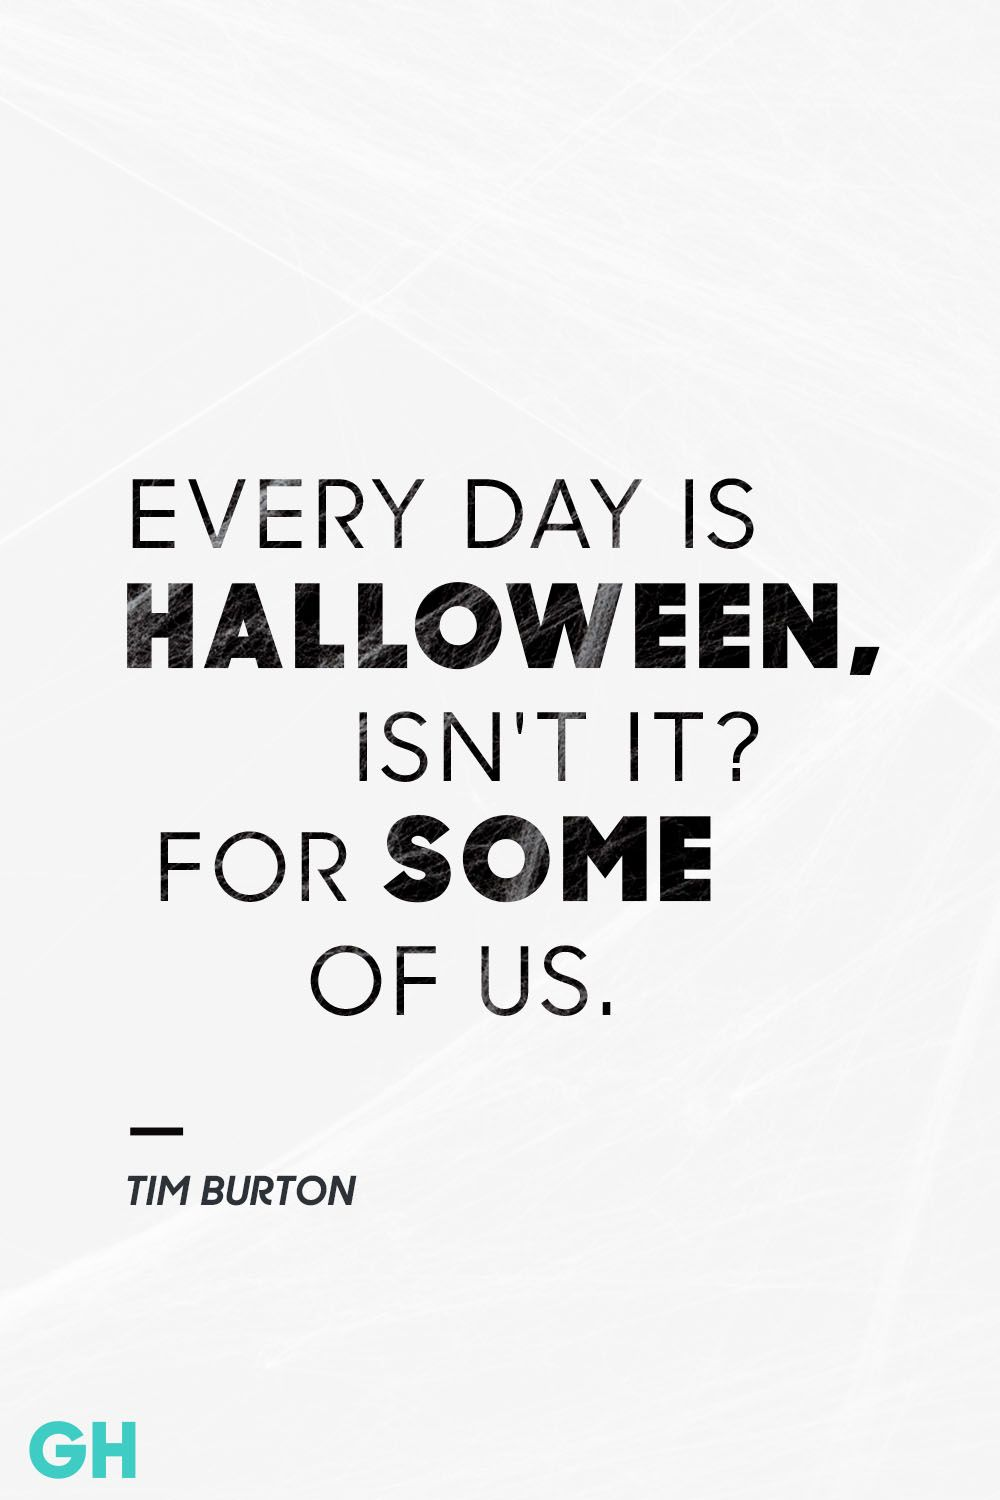 cbc9f54c3092 25 Spooky Halloween Quotes - Best Halloween Sayings